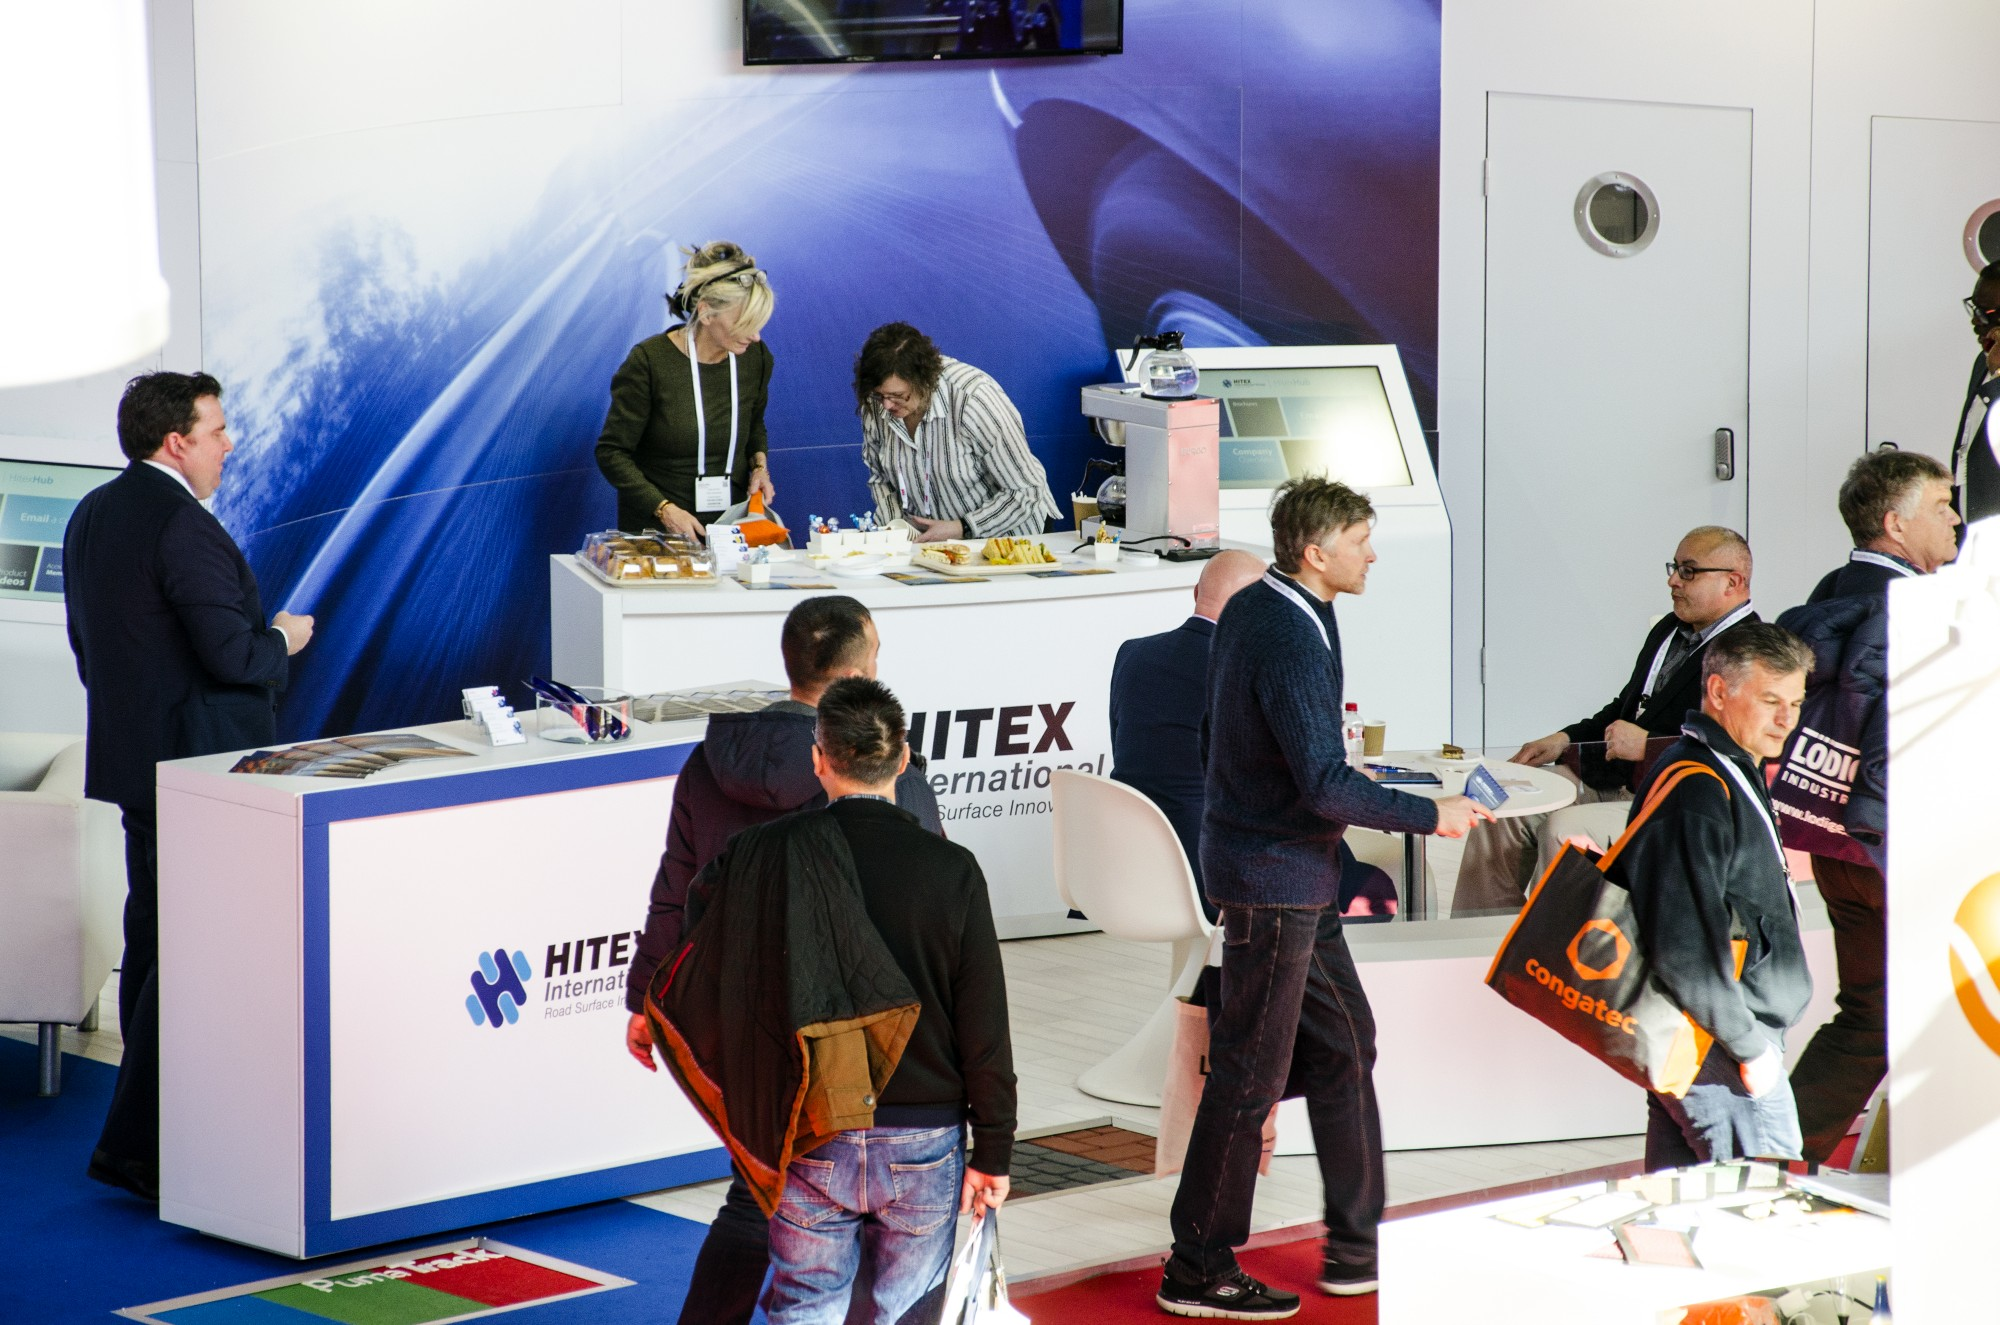 Hitex at Intertraffic 2018 32